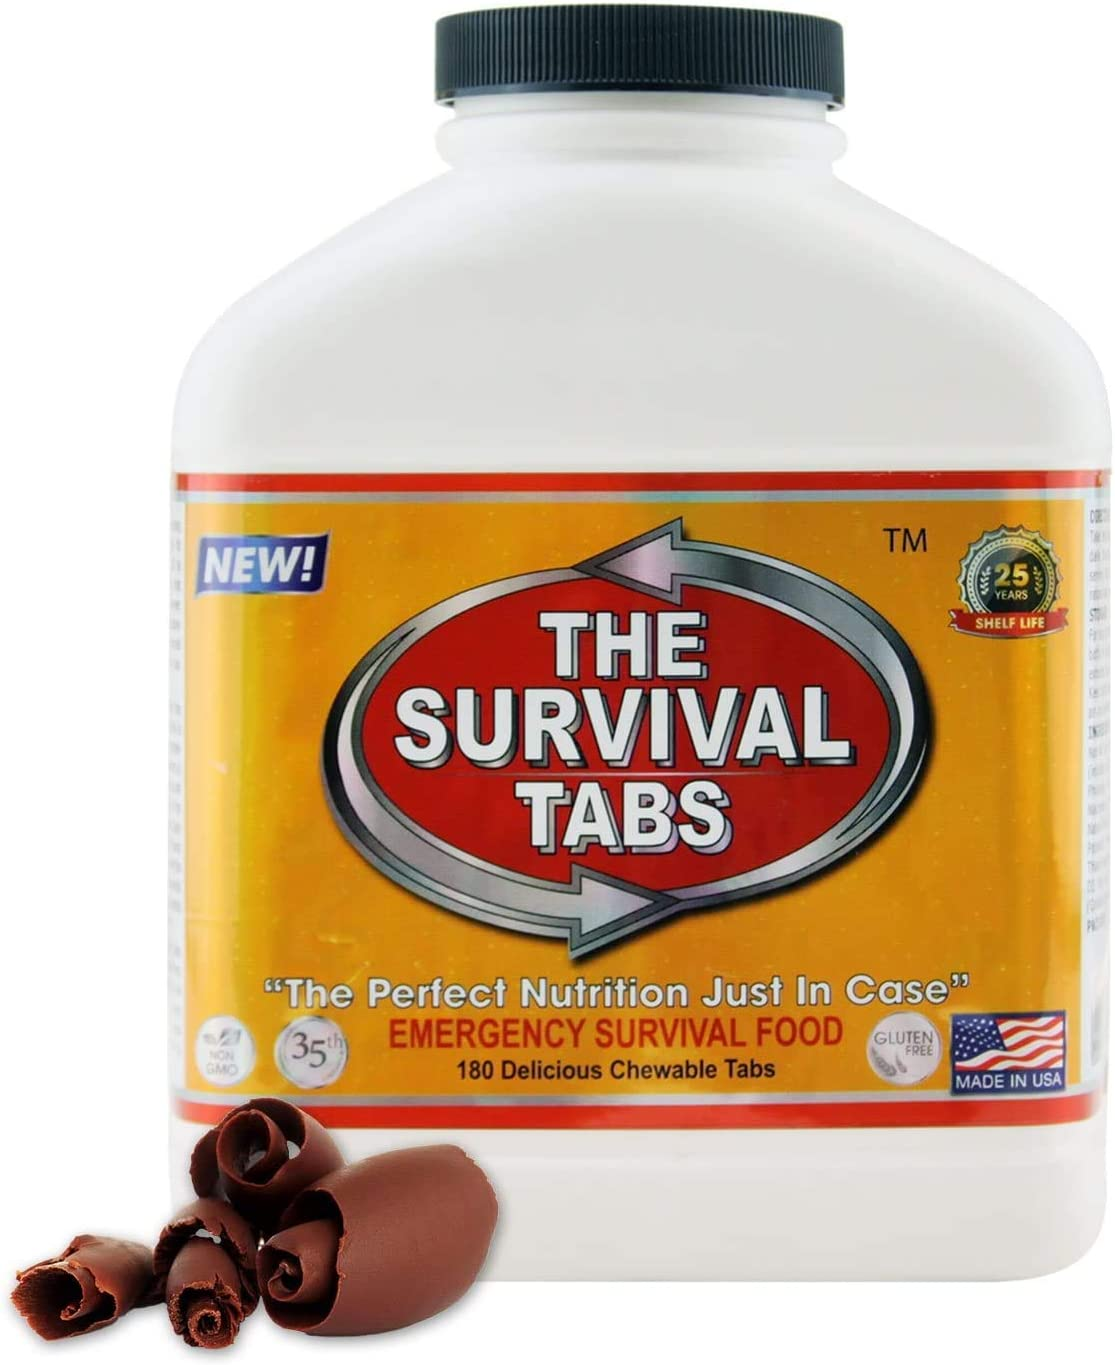 Survival Tabs 15 Day 180 Tabs Emergency Food Survival Food Meal Replacement MREs Gluten Free and Non-GMO 25 Years Shelf Life Long Term Food Storage - Chocolate Flavor